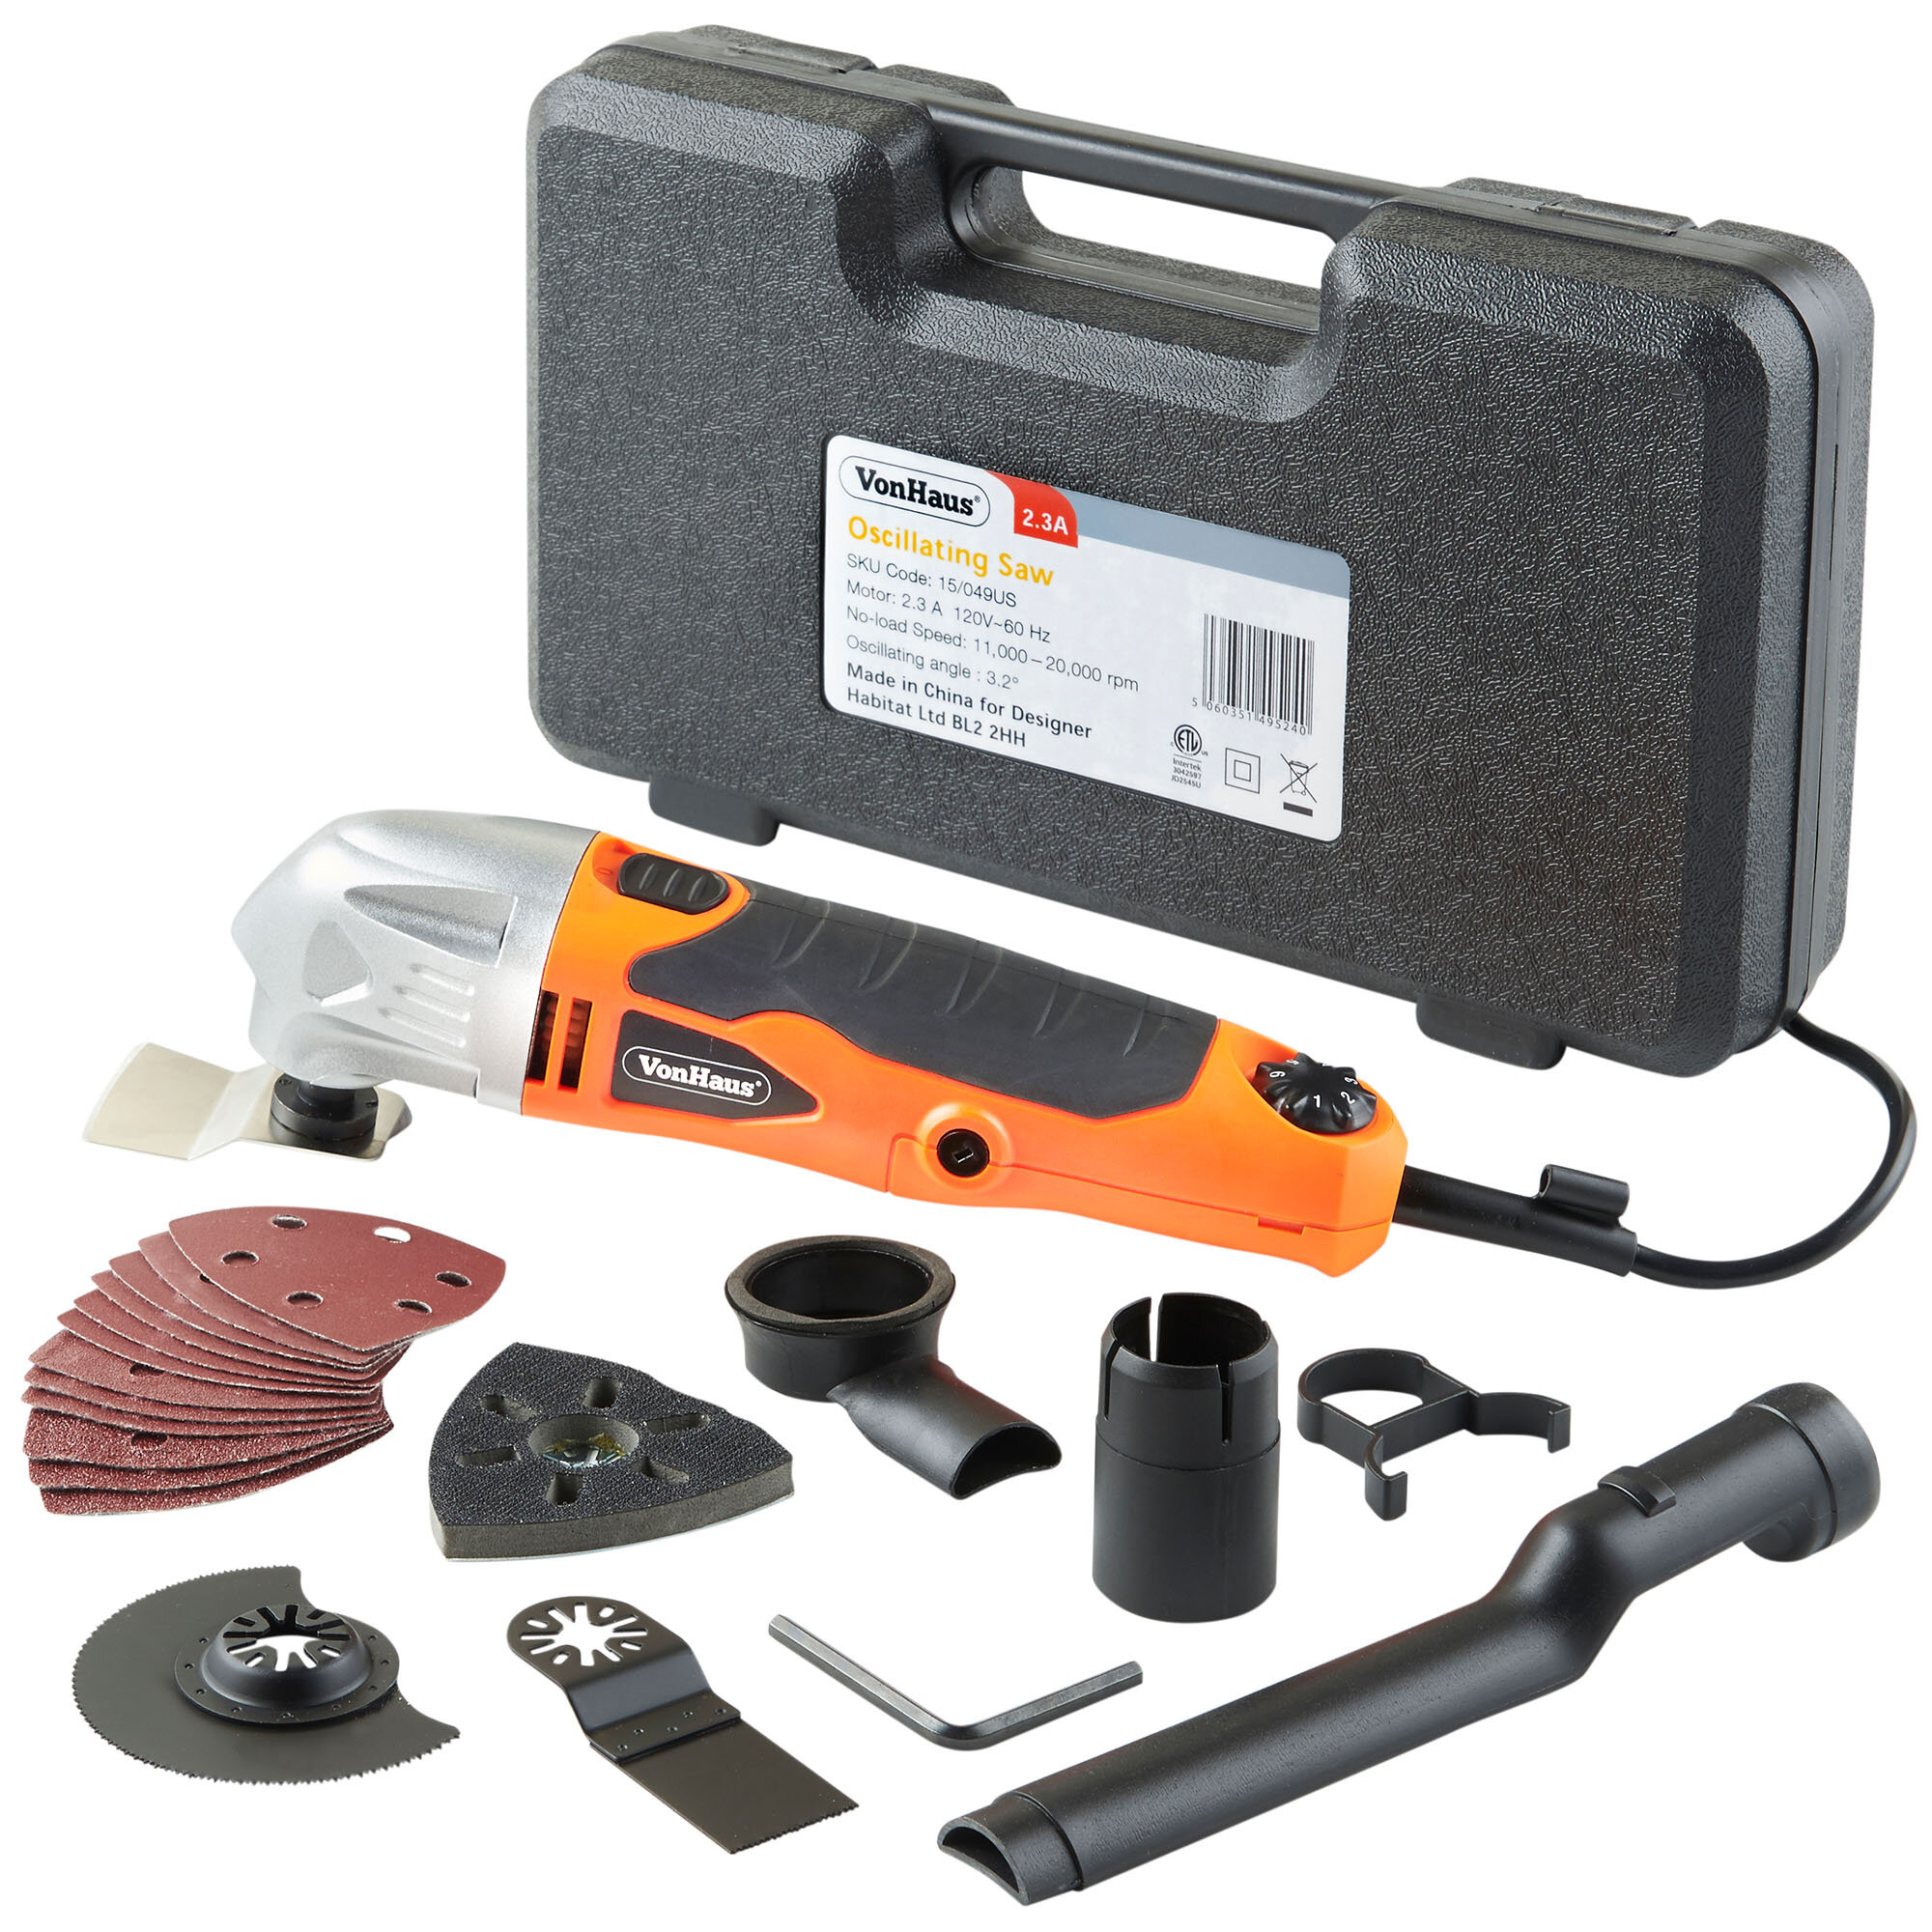 VonHaus Multi Purpose Oscillating Tool | Wayfair